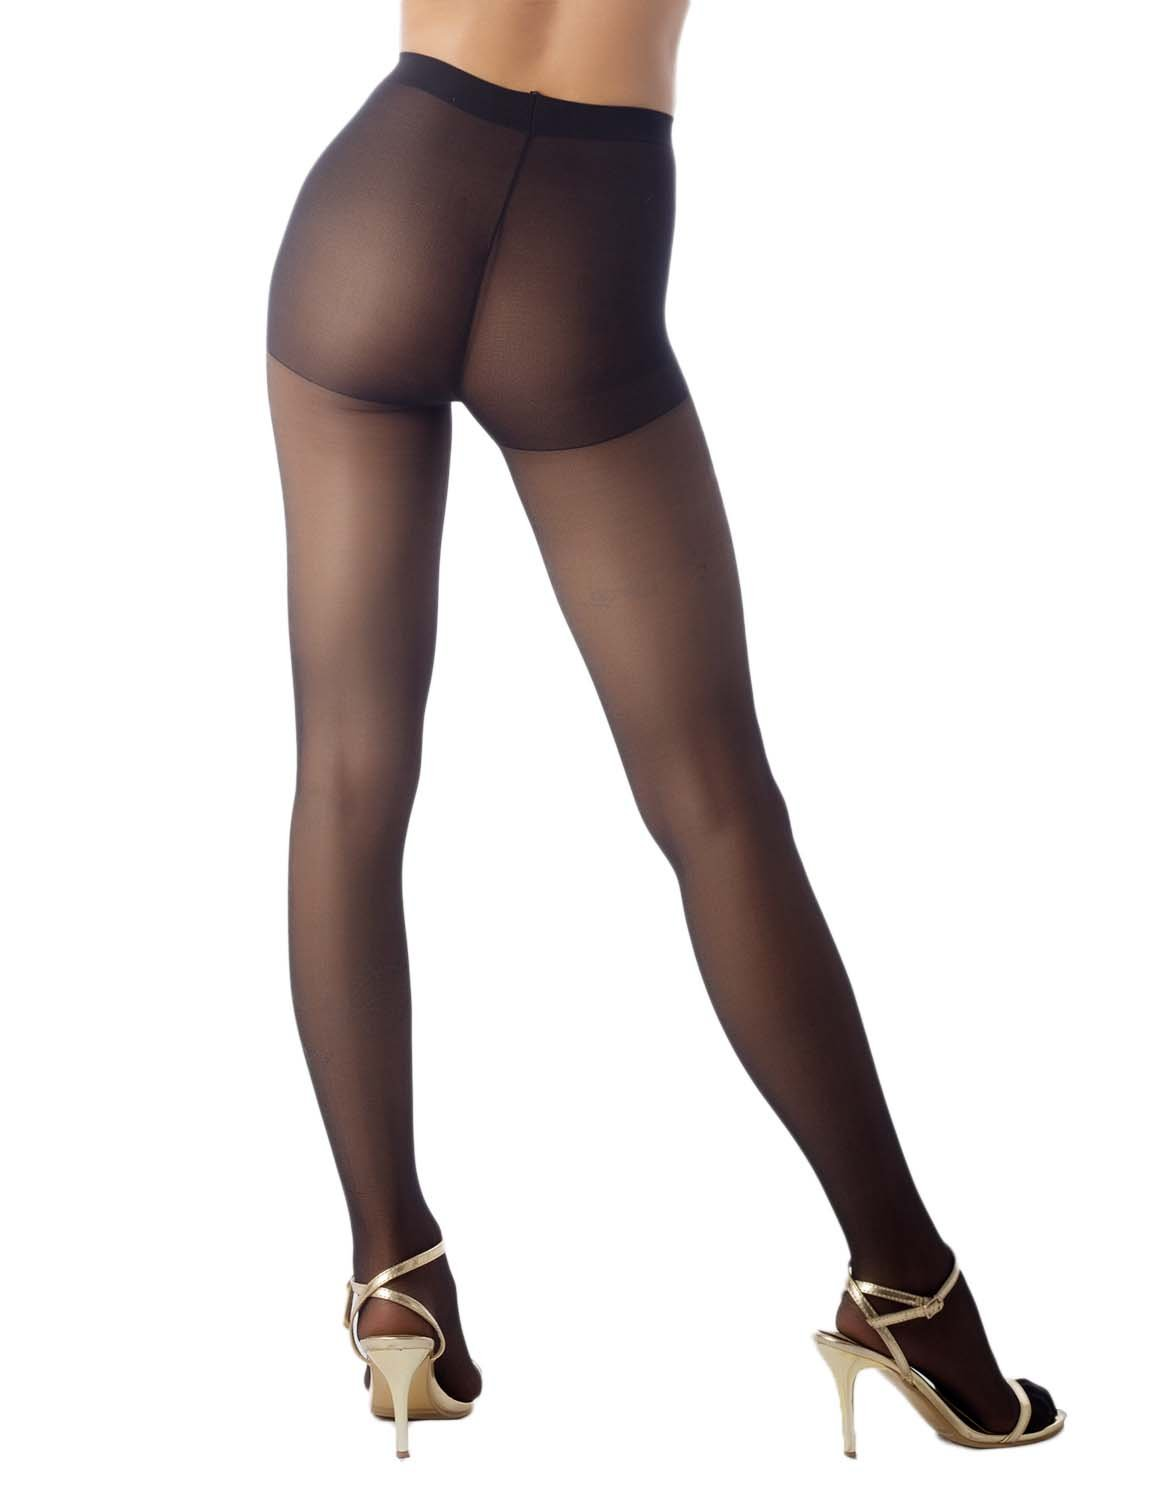 Women's Flower Vine Print Tights Soft 5 DEN Ultra Sheer Tights Pantyhose, Size: One Size, Black